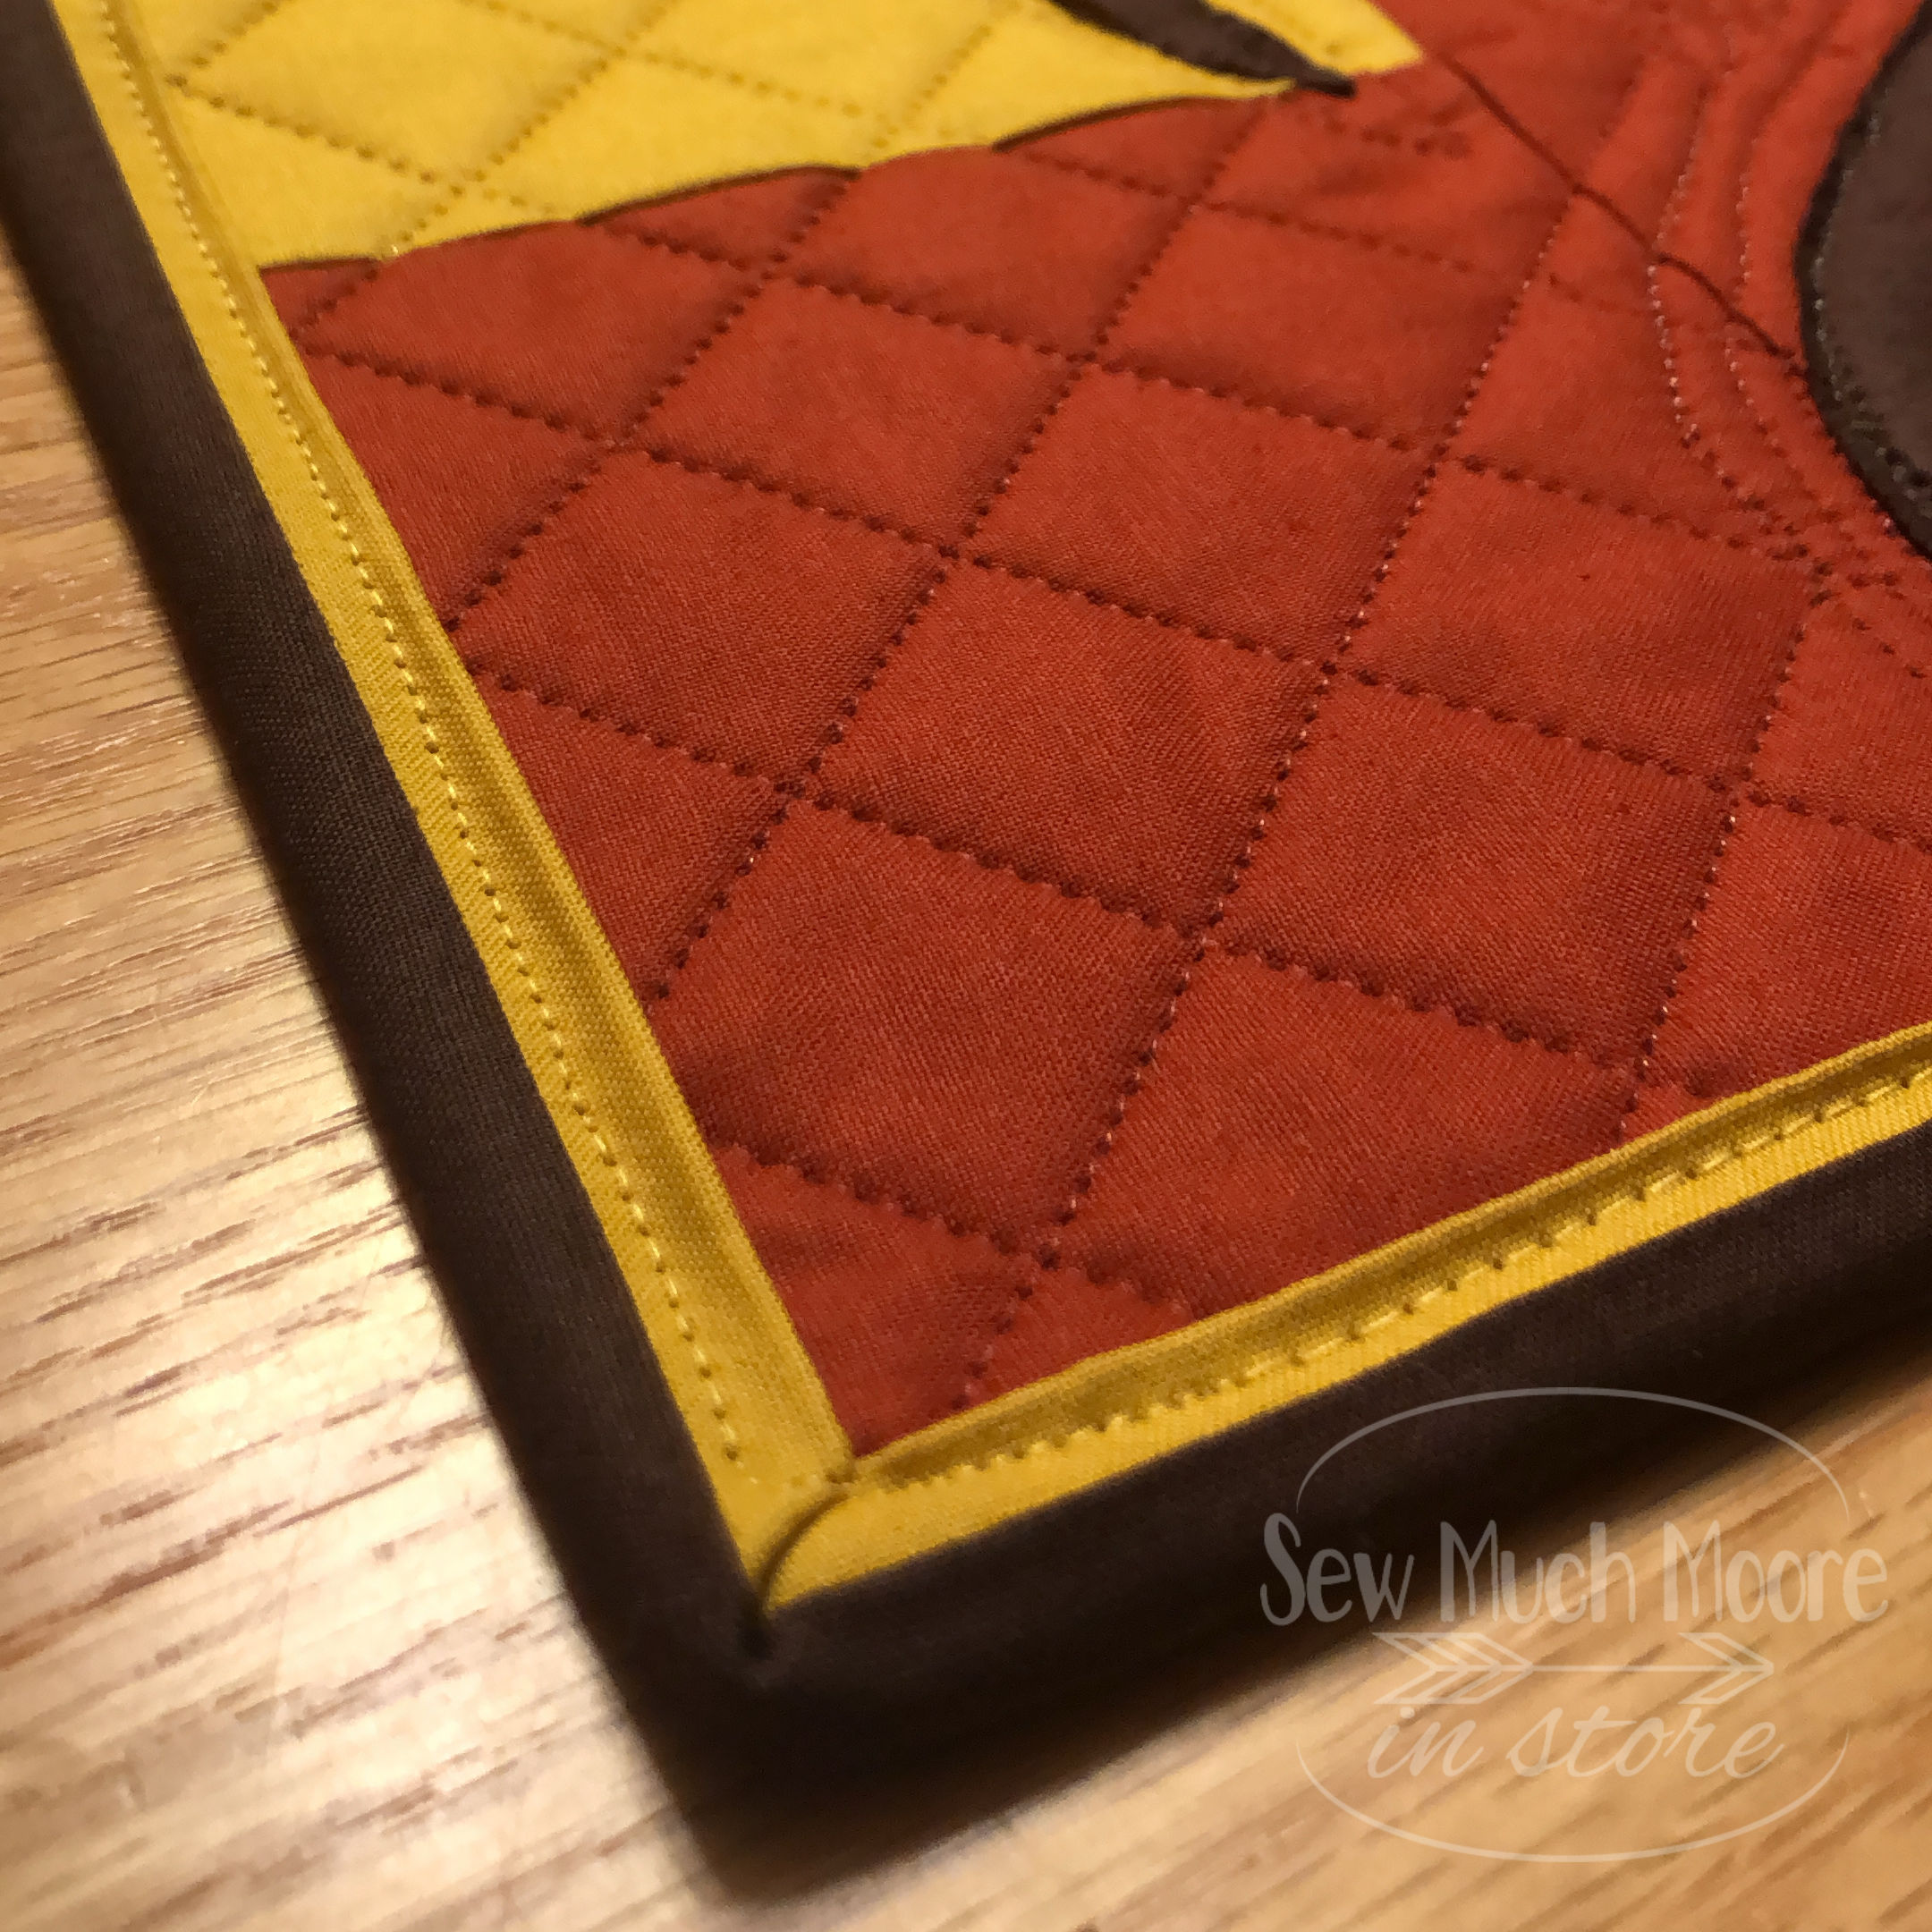 This is made from FABRIC!! Let me show some of the details and also some inspiration so you might want to make a Bella Strega Wall Quilt too! #Easy #Patterns #Tutorial #Modern #project #Fabric #Patchwork #DIY #Sampler #Ideas #Basic #Quilt #WallHanging #Quilting #Quilter #SewMuchMoore #SewMuchMooreInStore